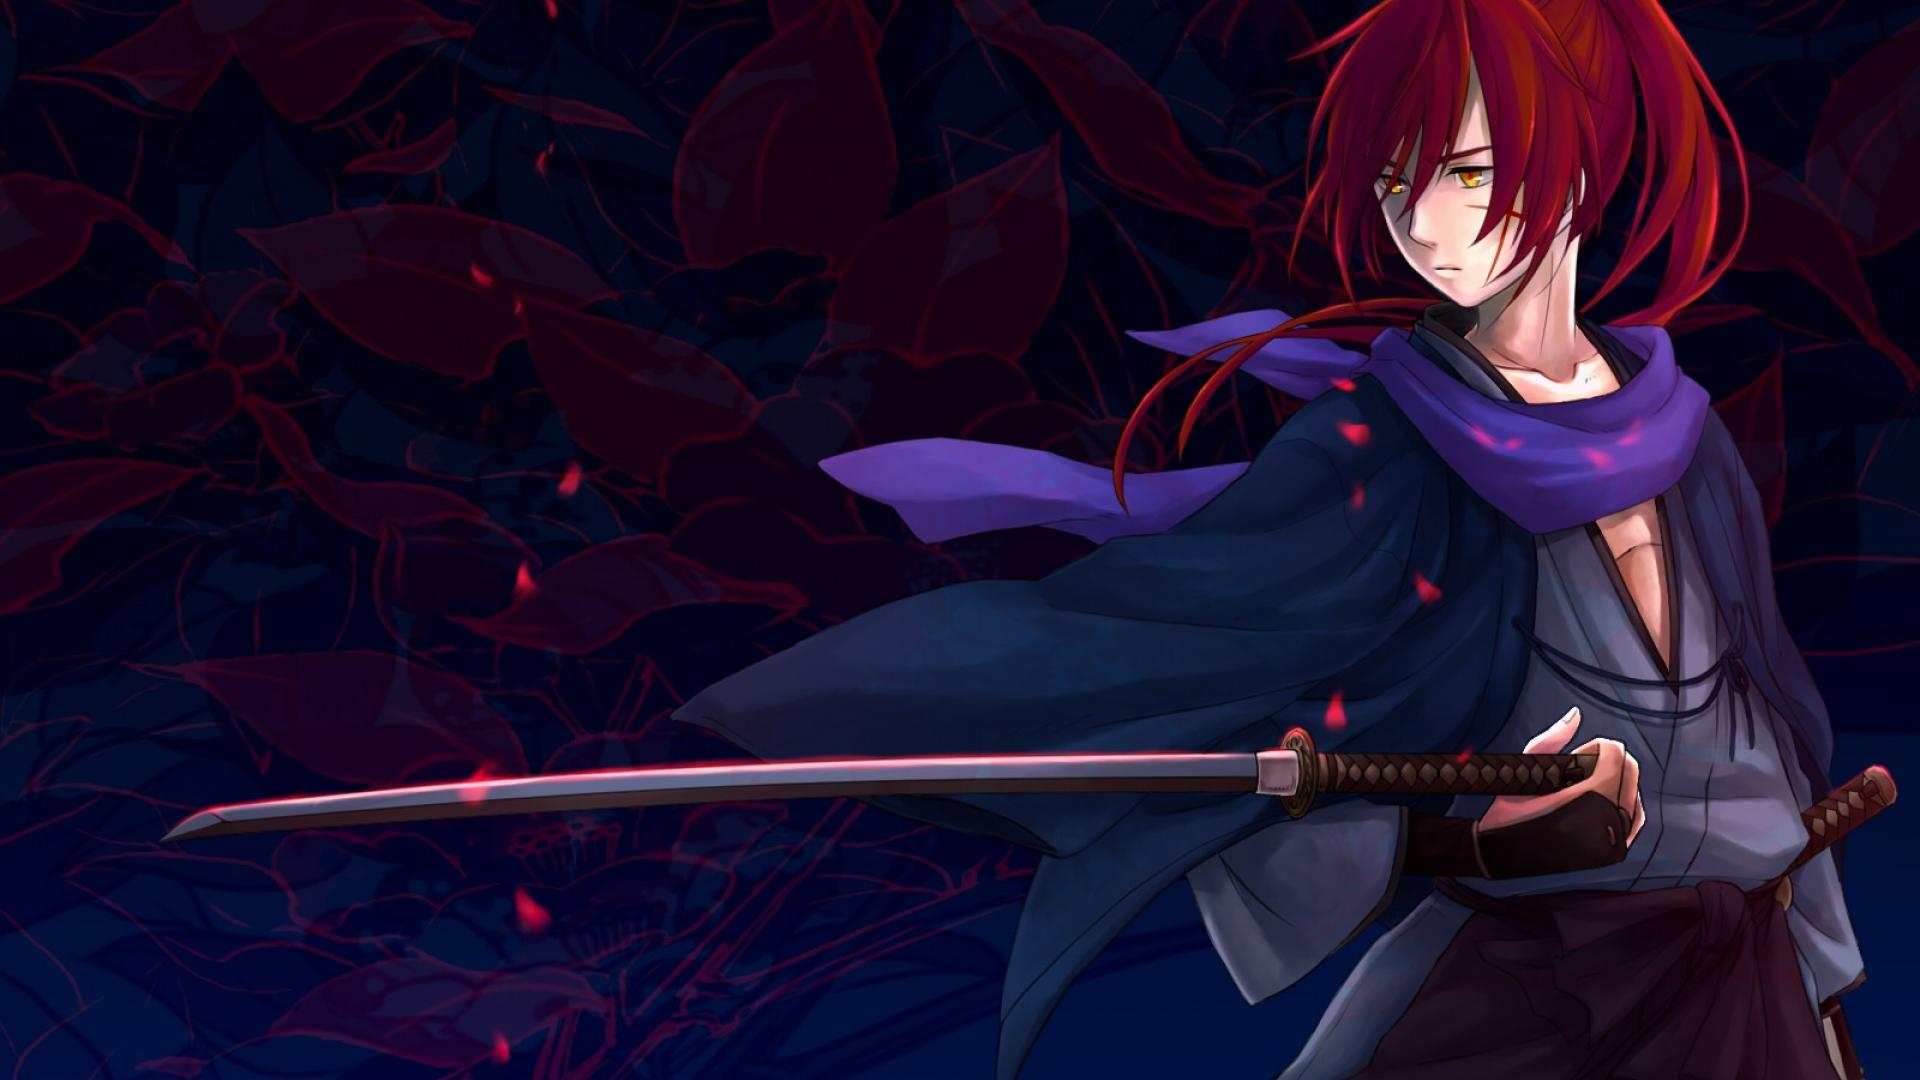 kenshin himura wallpaper - photo #27